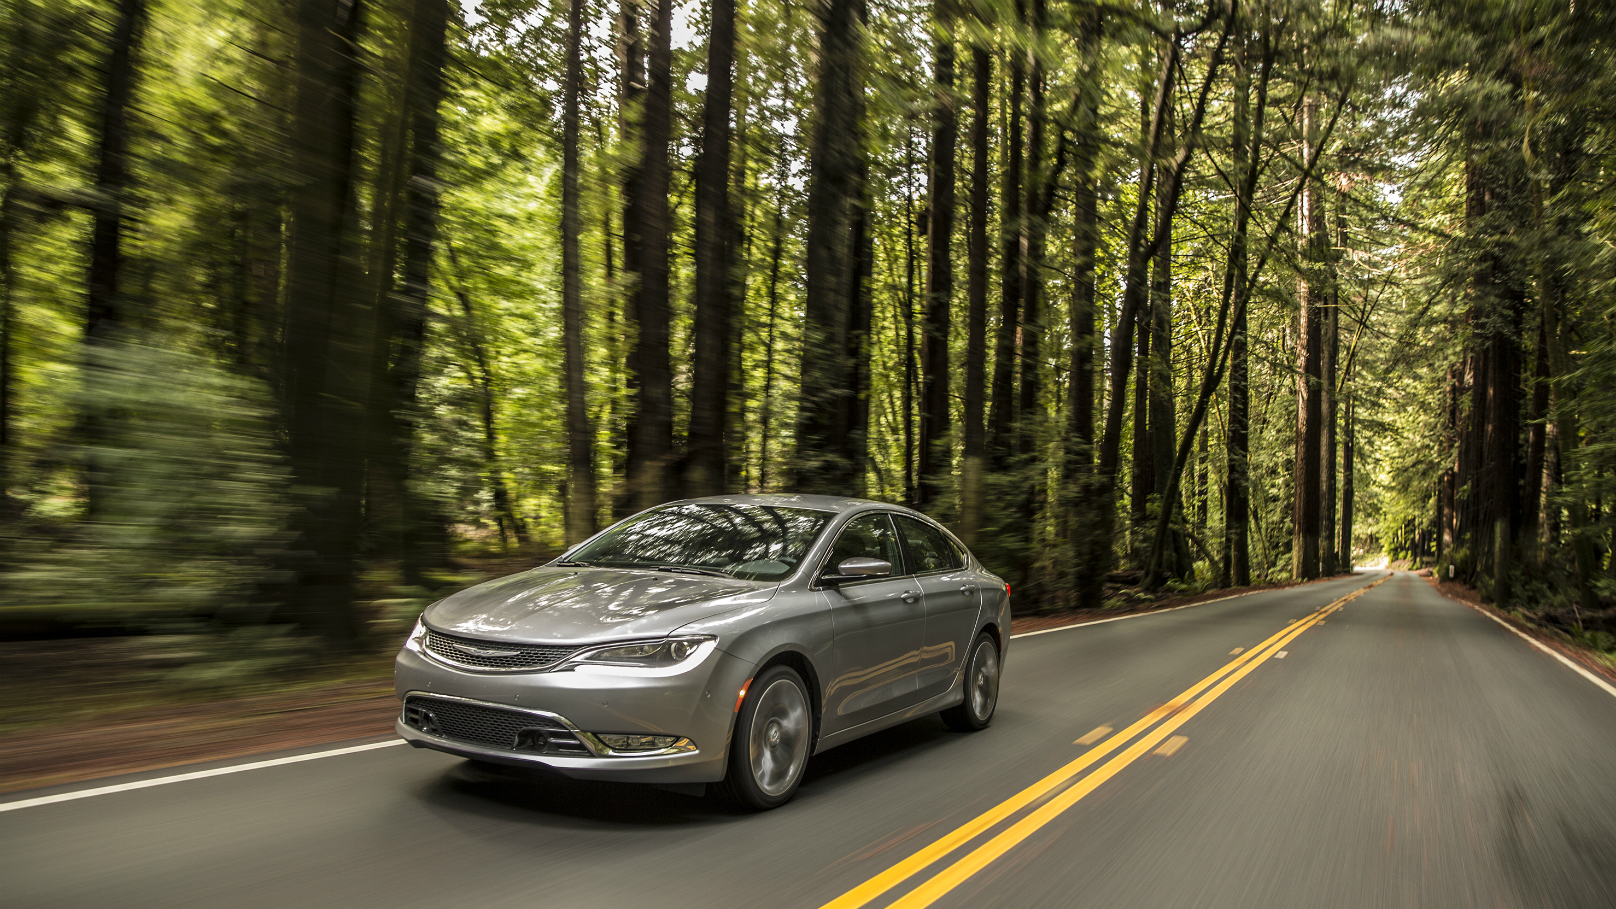 Least Reliable Cars 2017 Chrysler 200